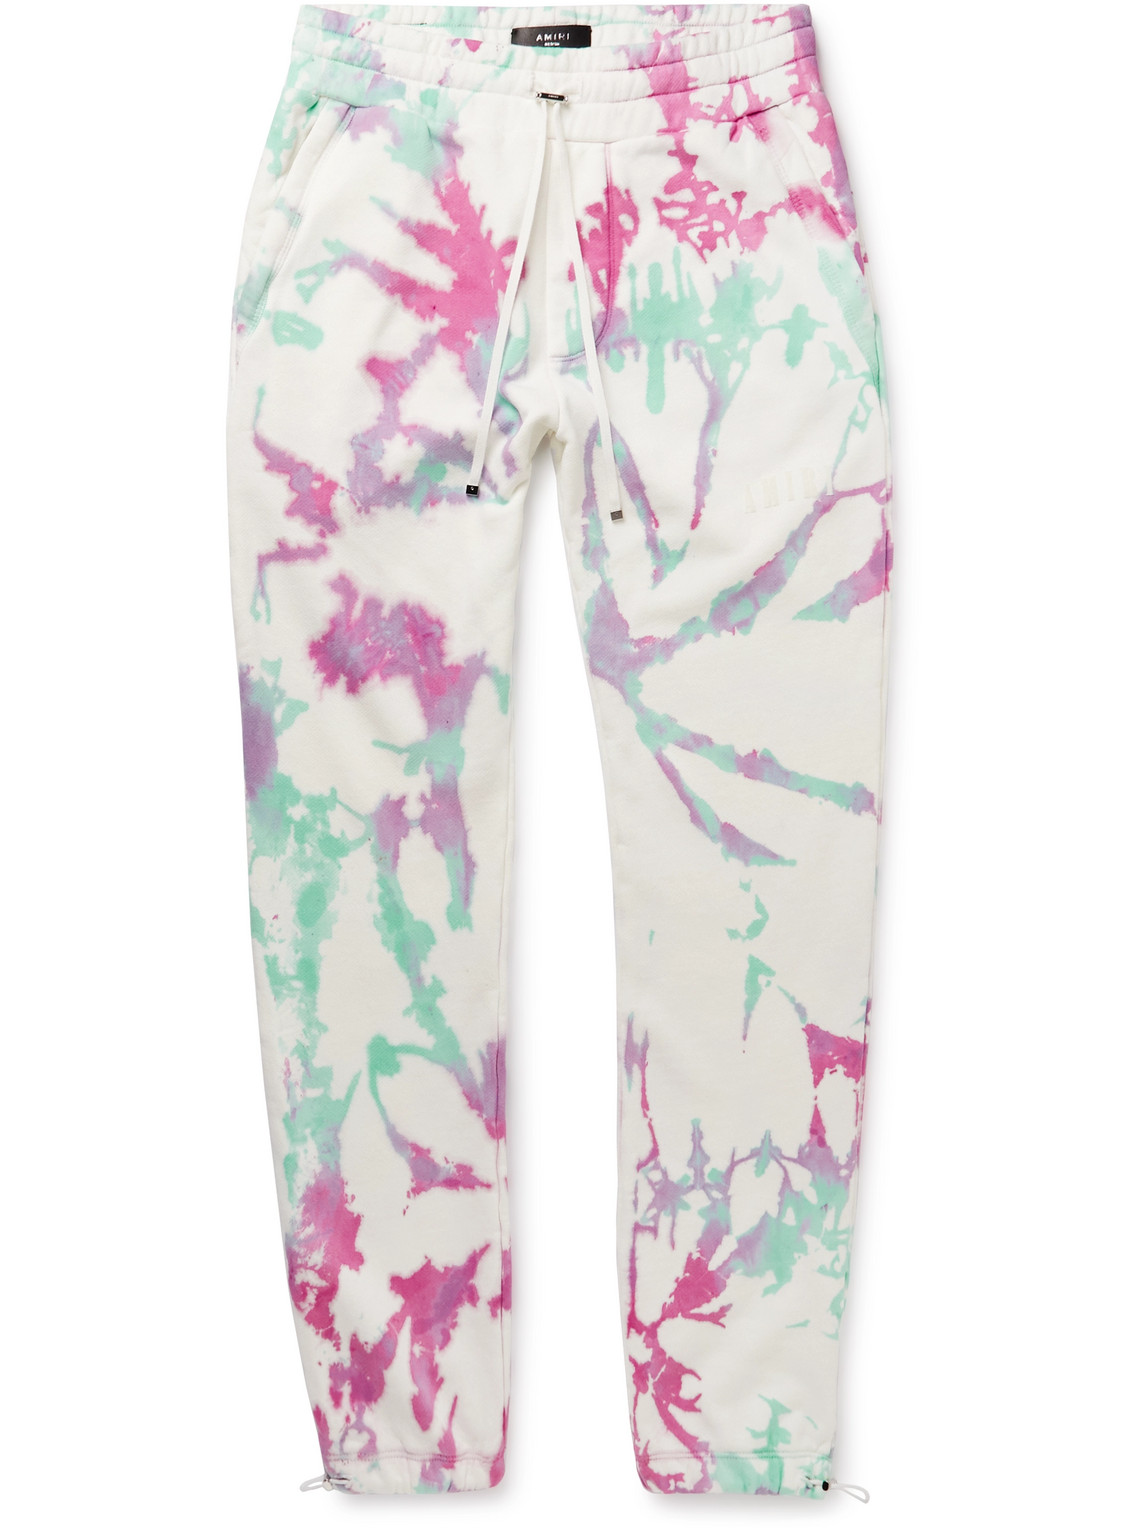 Slim-Fit Tapered Tie-Dyed Cotton-Jersey Drawstring Sweatpants